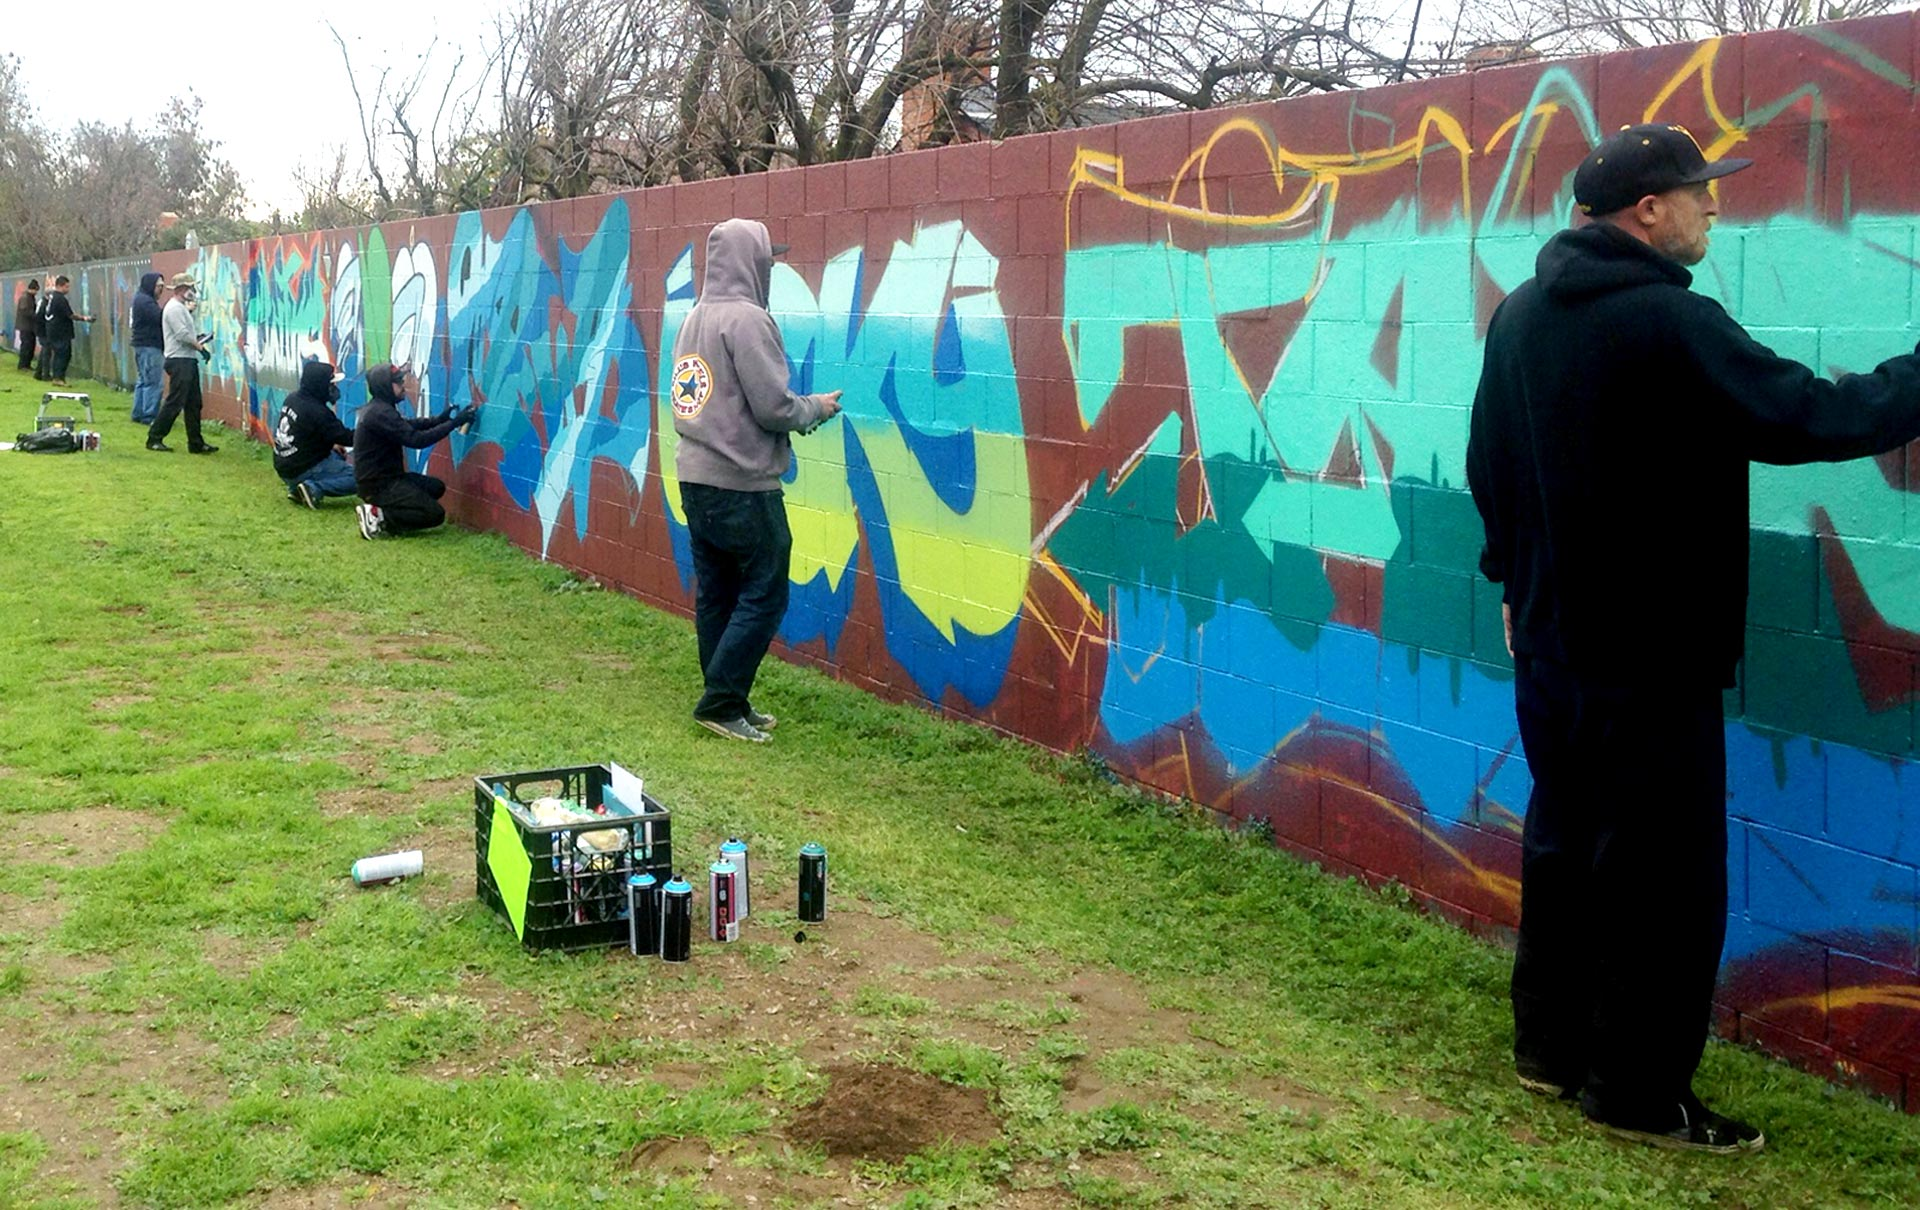 Graffiti wall pictures - A Crew Of Graffiti Artists Called Lords Paint A Quarter Mile Long Wall To